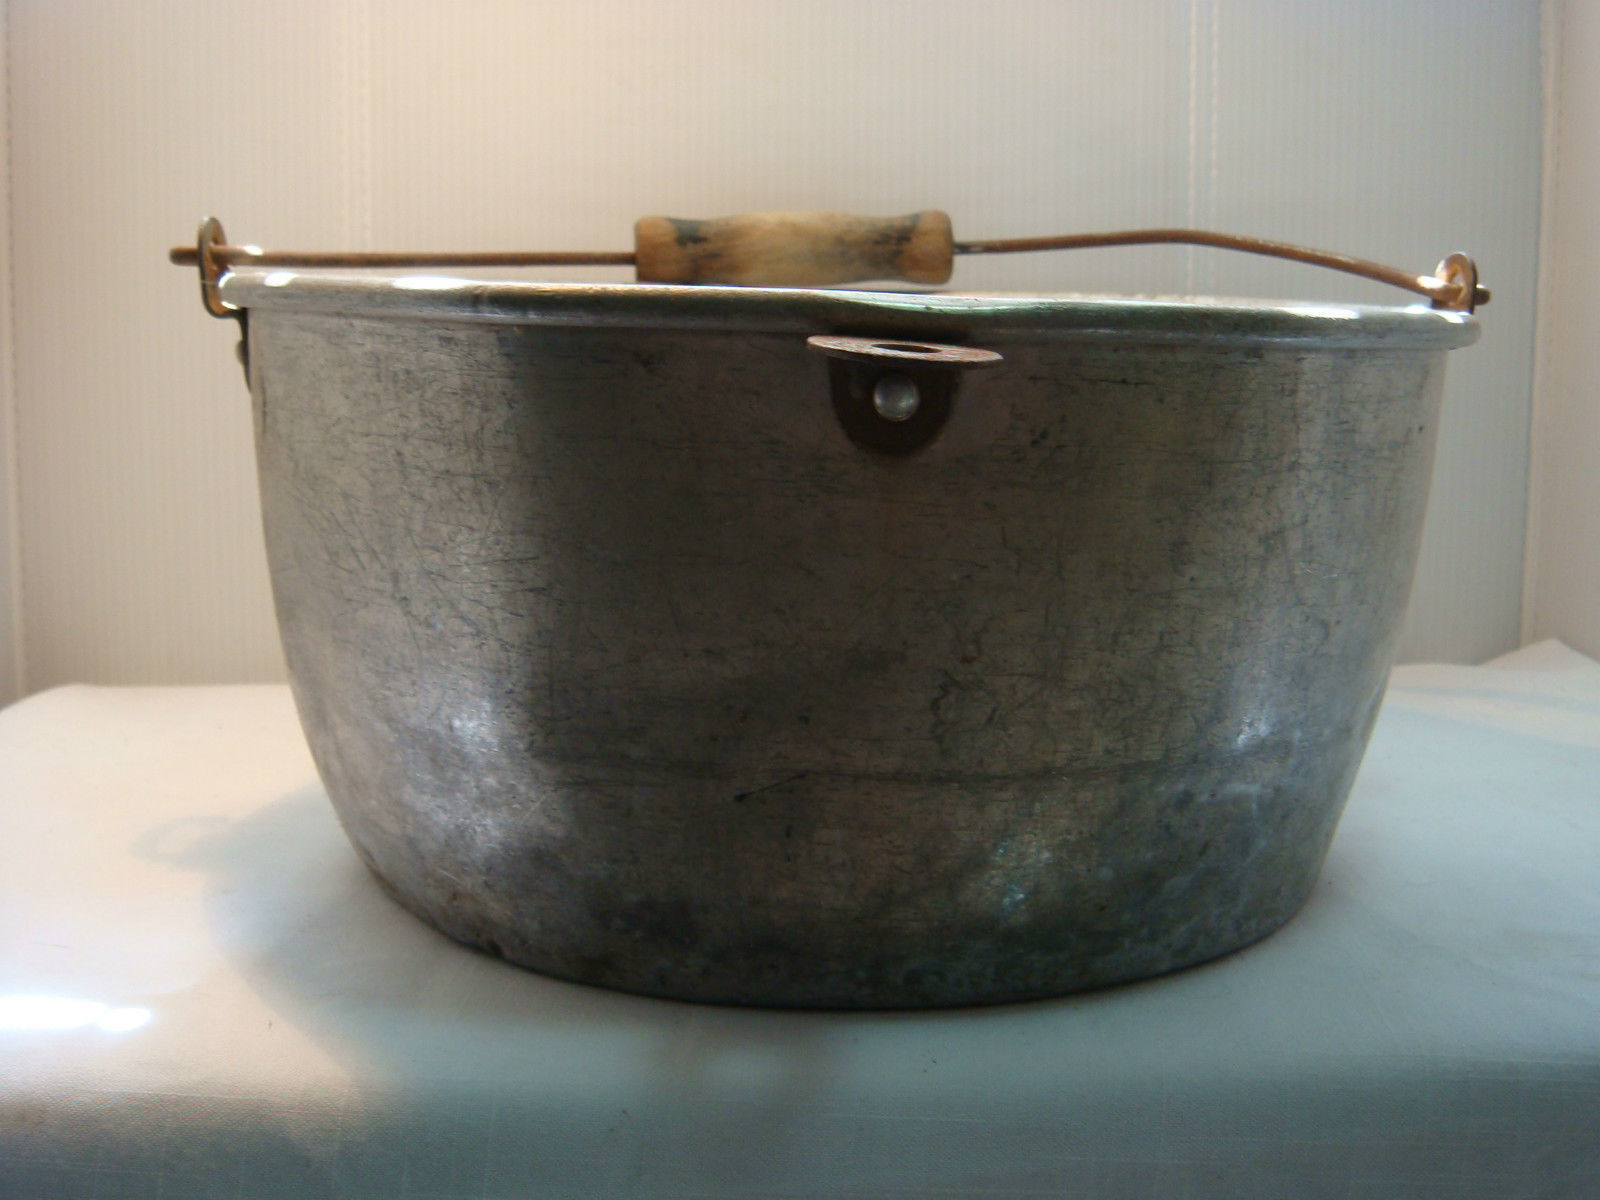 VINTAGE MILKING PAIL - KITCHEN PAN - ALUMINUM - VERY USED & VERY OLD image 4